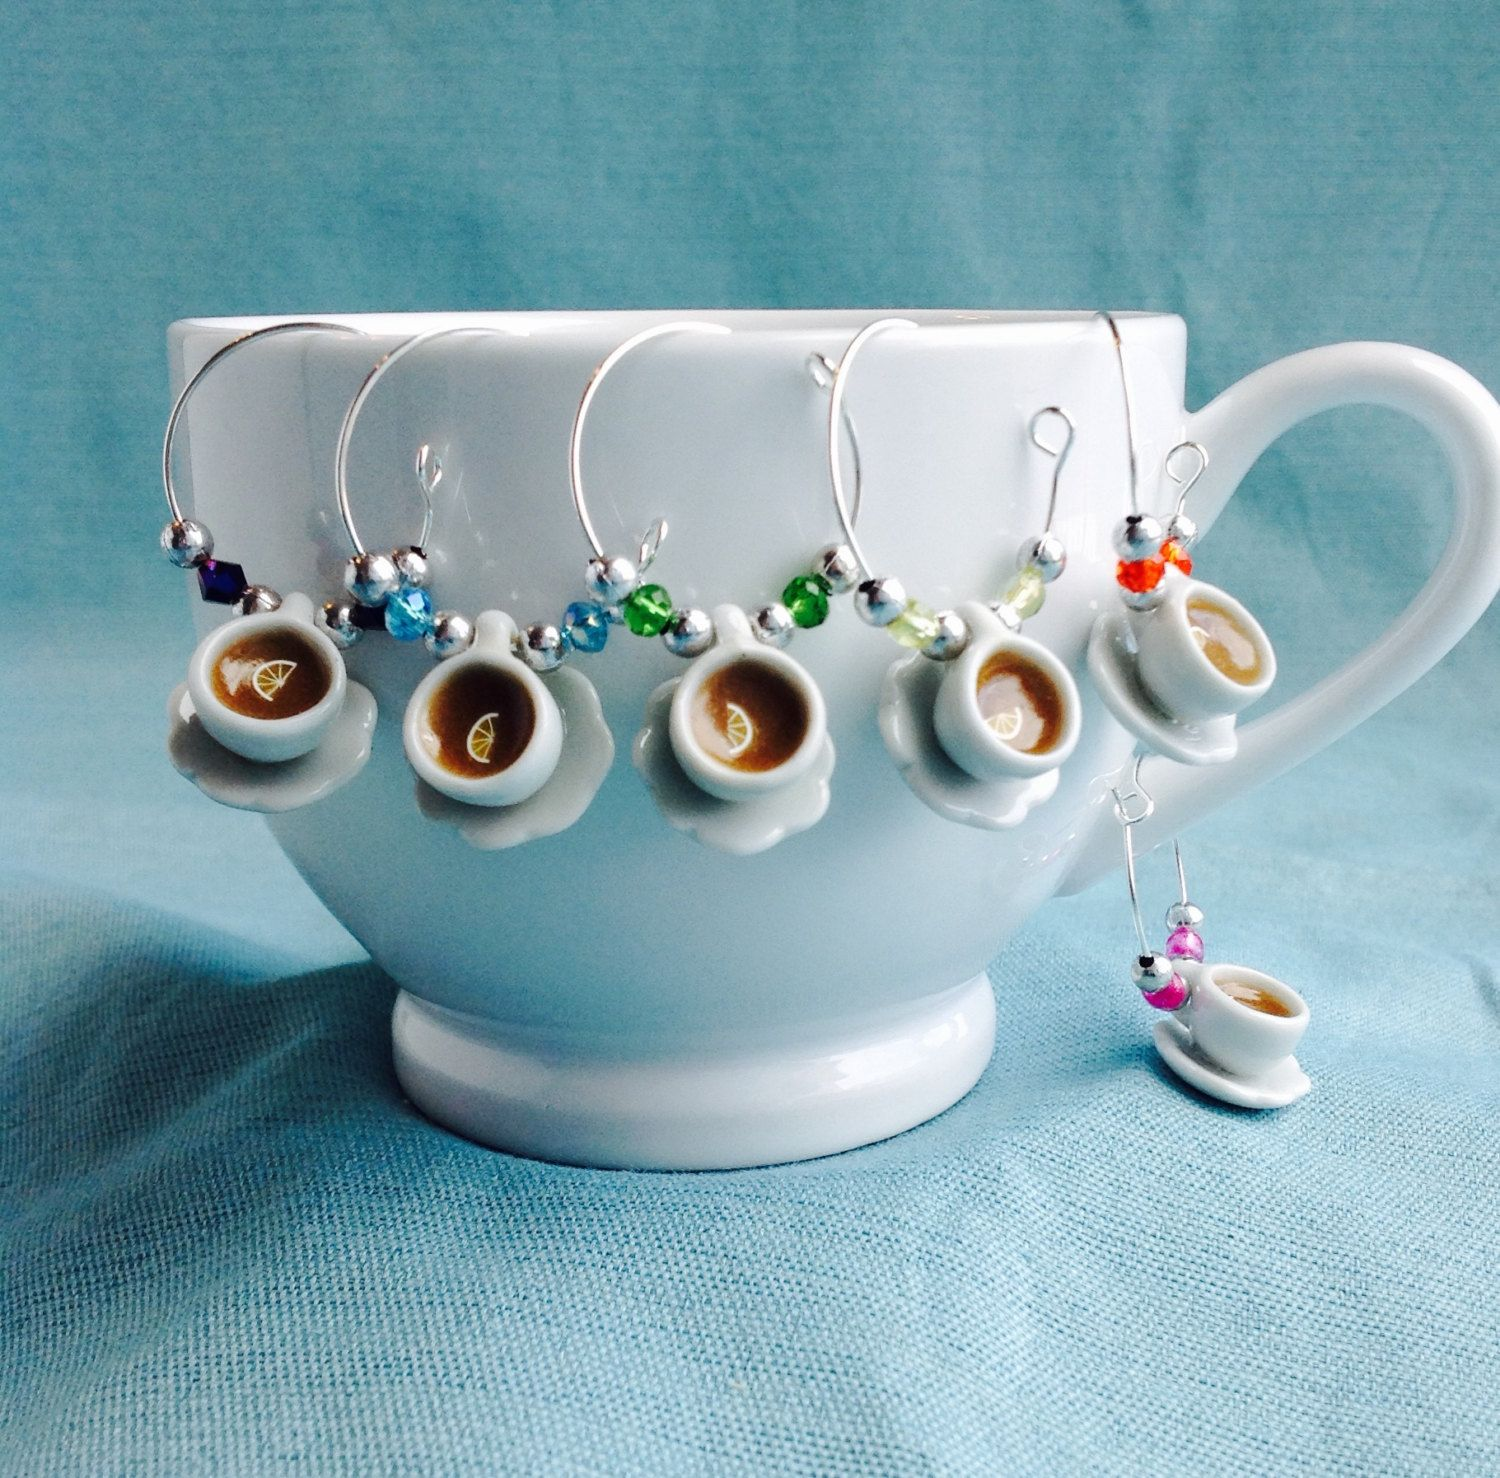 6 X MAKE YOUR OWN WINE GLASS//TEACUP MUG CHARMS ALICE IN WONDERLAND THEME